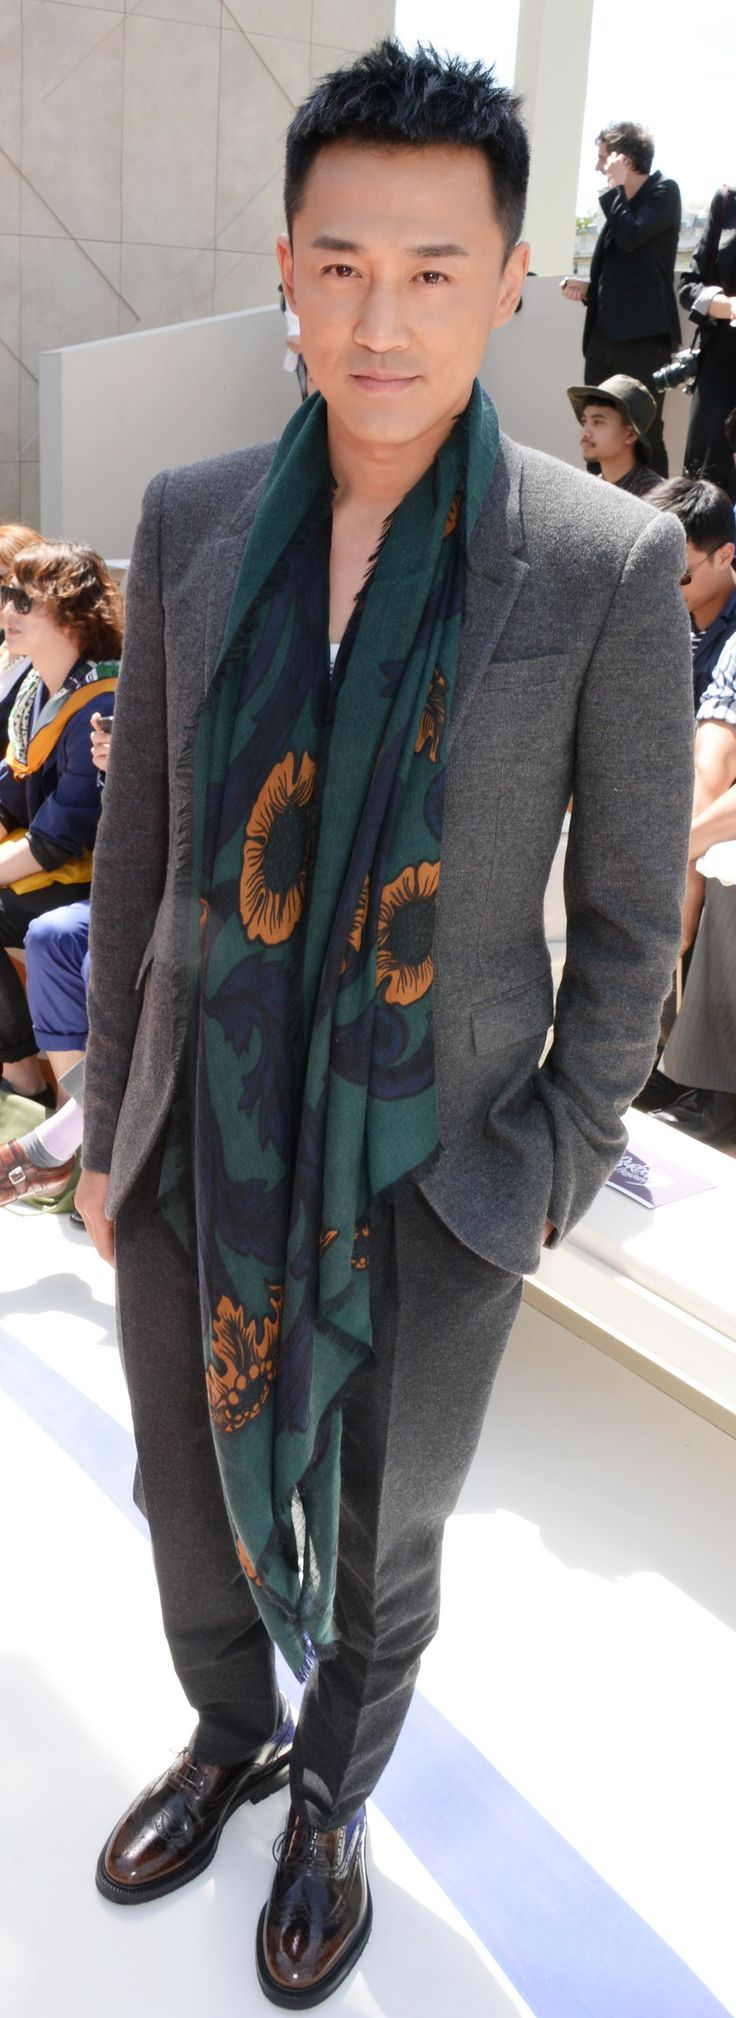 Hong Kong actor Raymond Lam wearing Burberry tailoring and a printed scarf after the Burberry S/S15 show in London